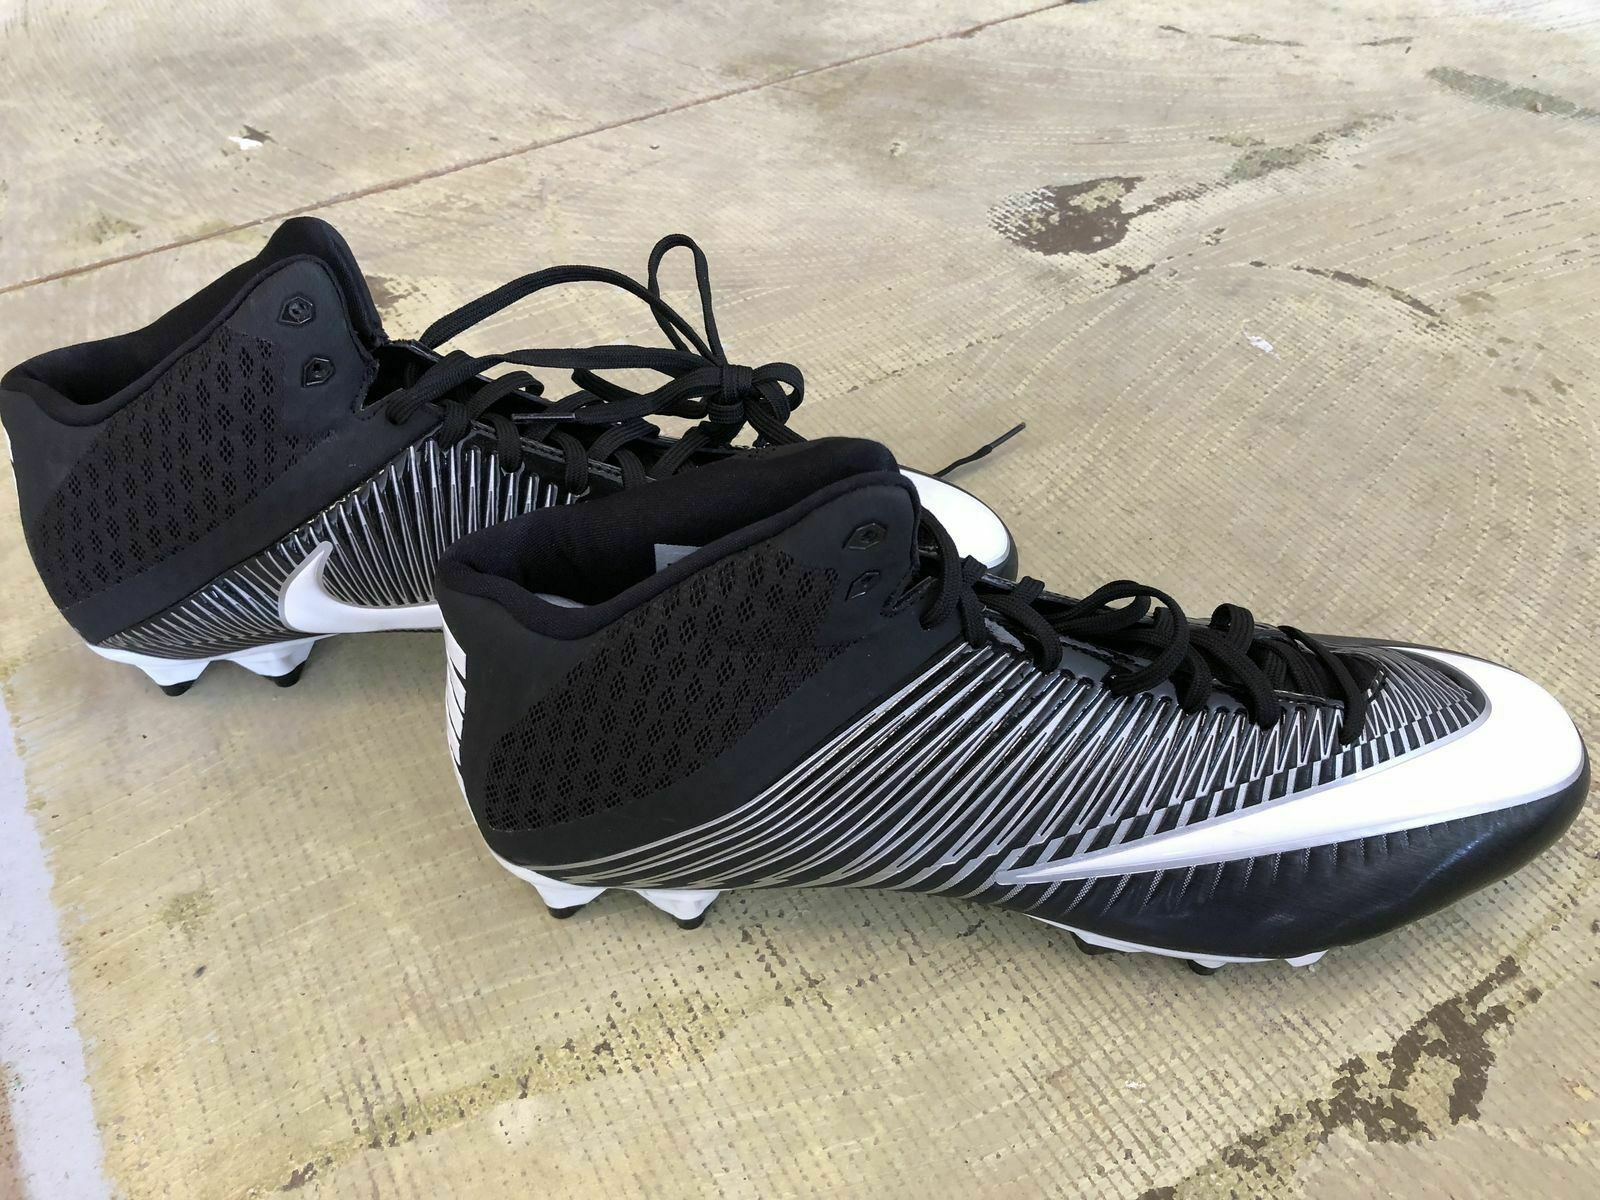 Primary image for Nike Vapor Speed 3/4 Mid 15.0 Size Football Cleats